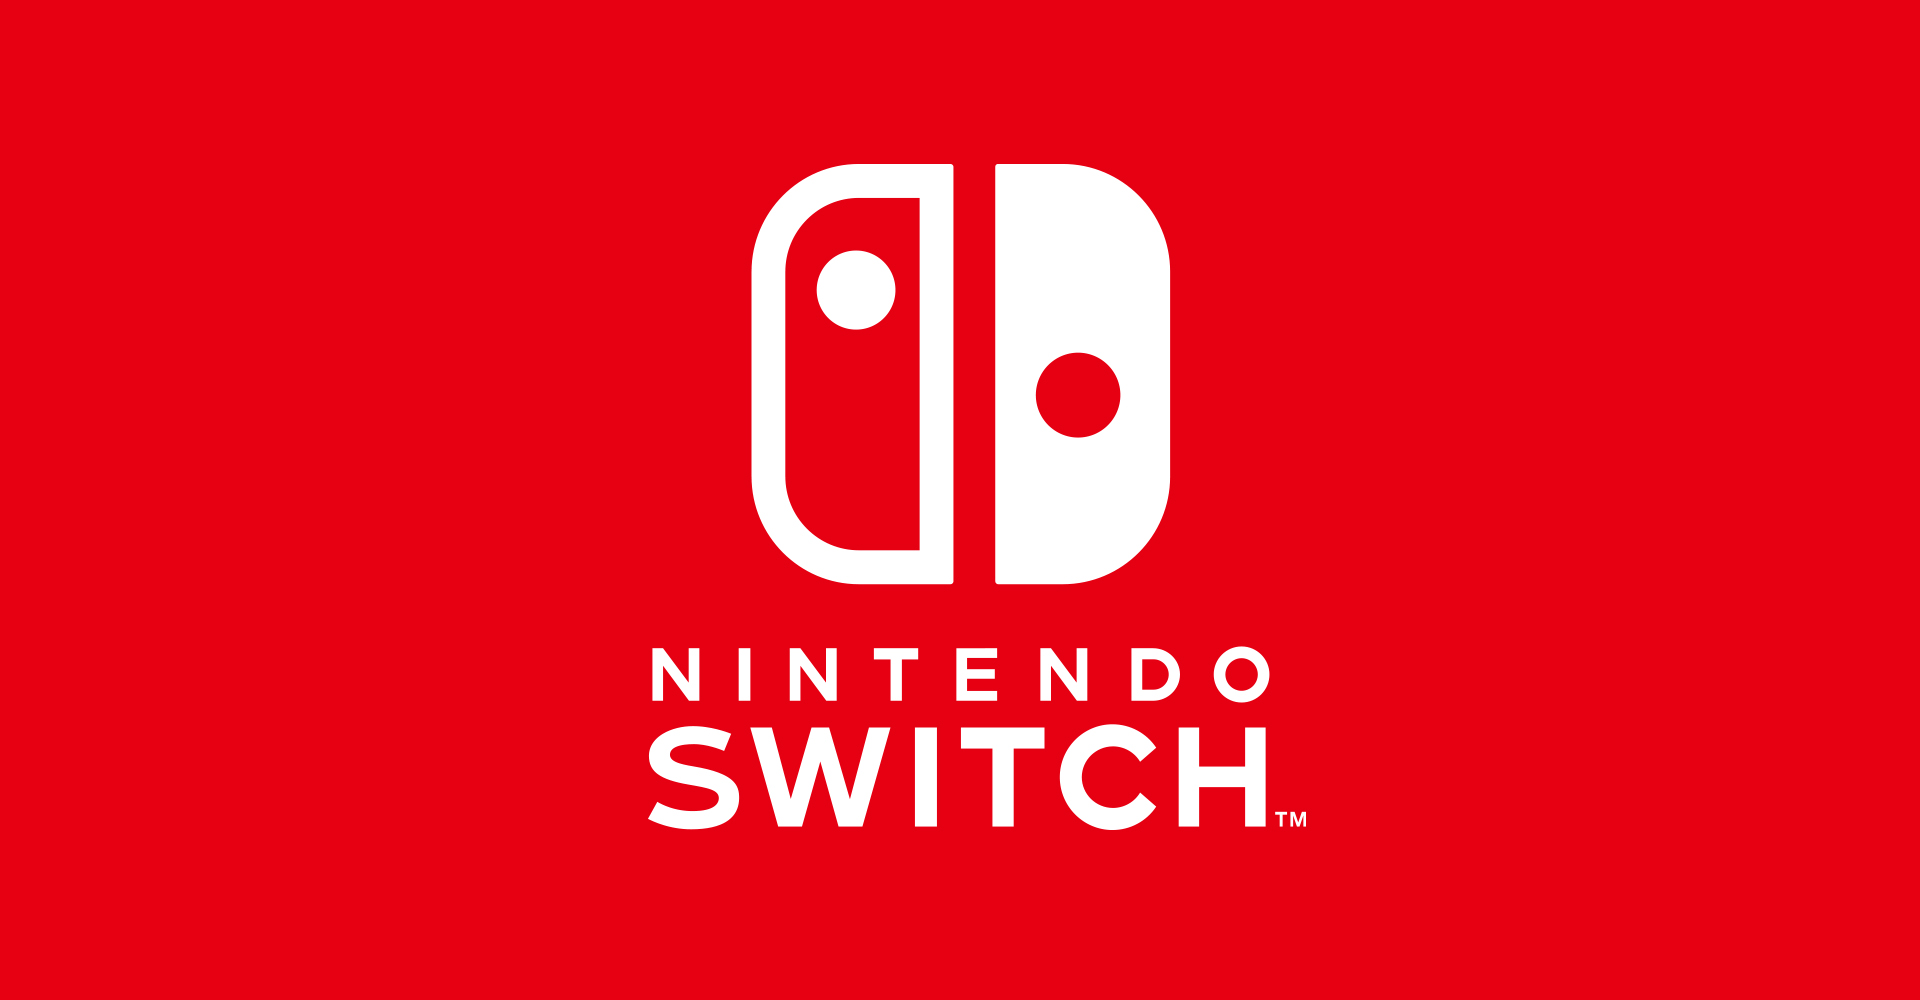 Nintendo Switch Does Not Require Any Subscription For Many Games Like Fortnite